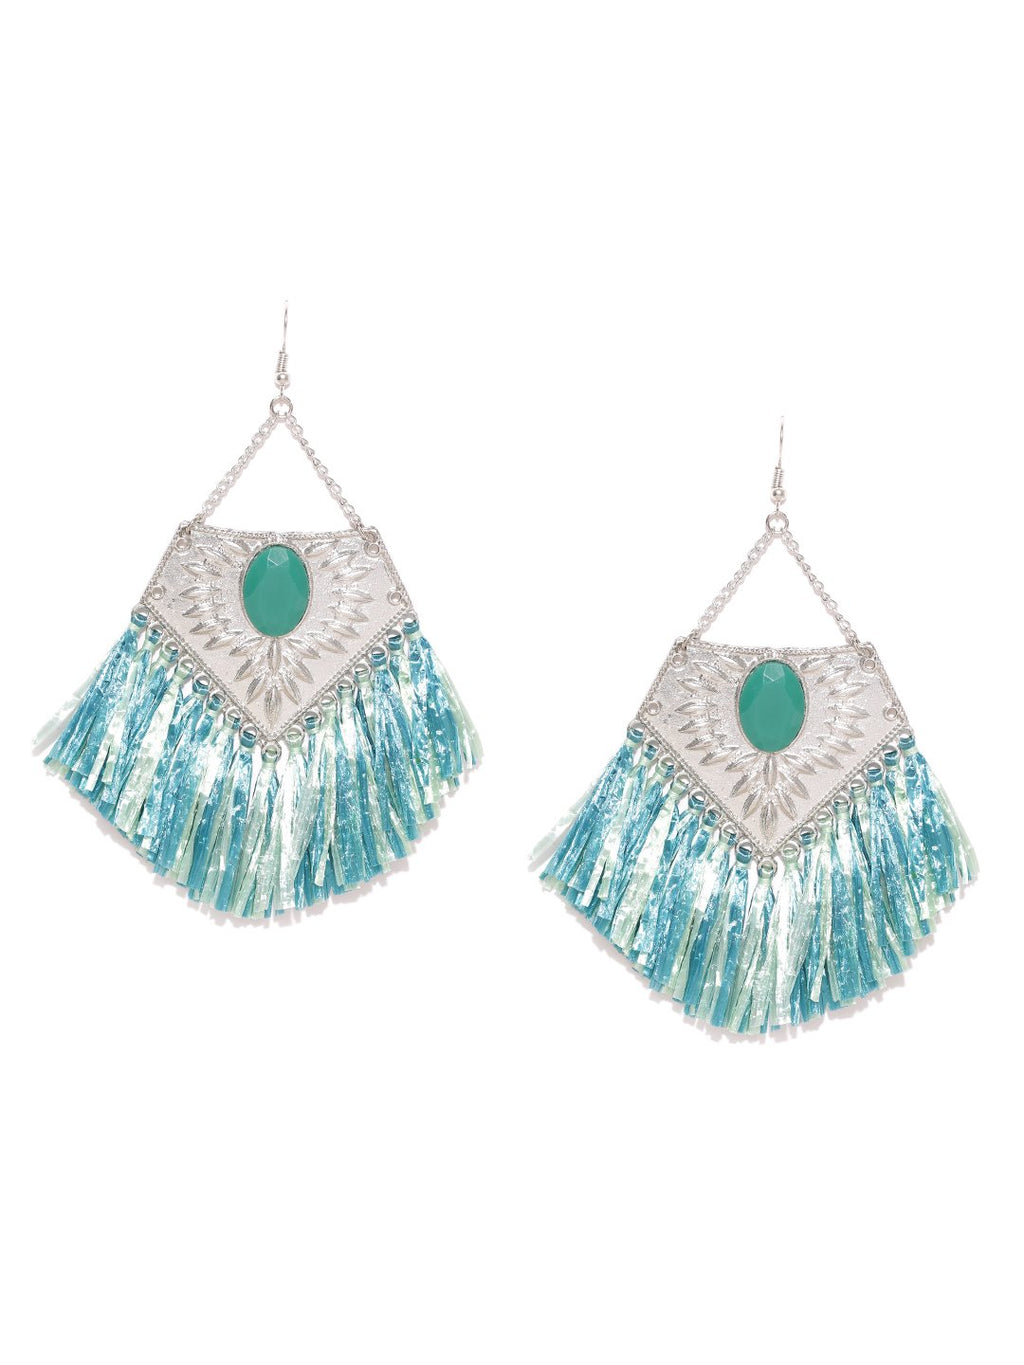 Blueberry silver and green tassel earrings